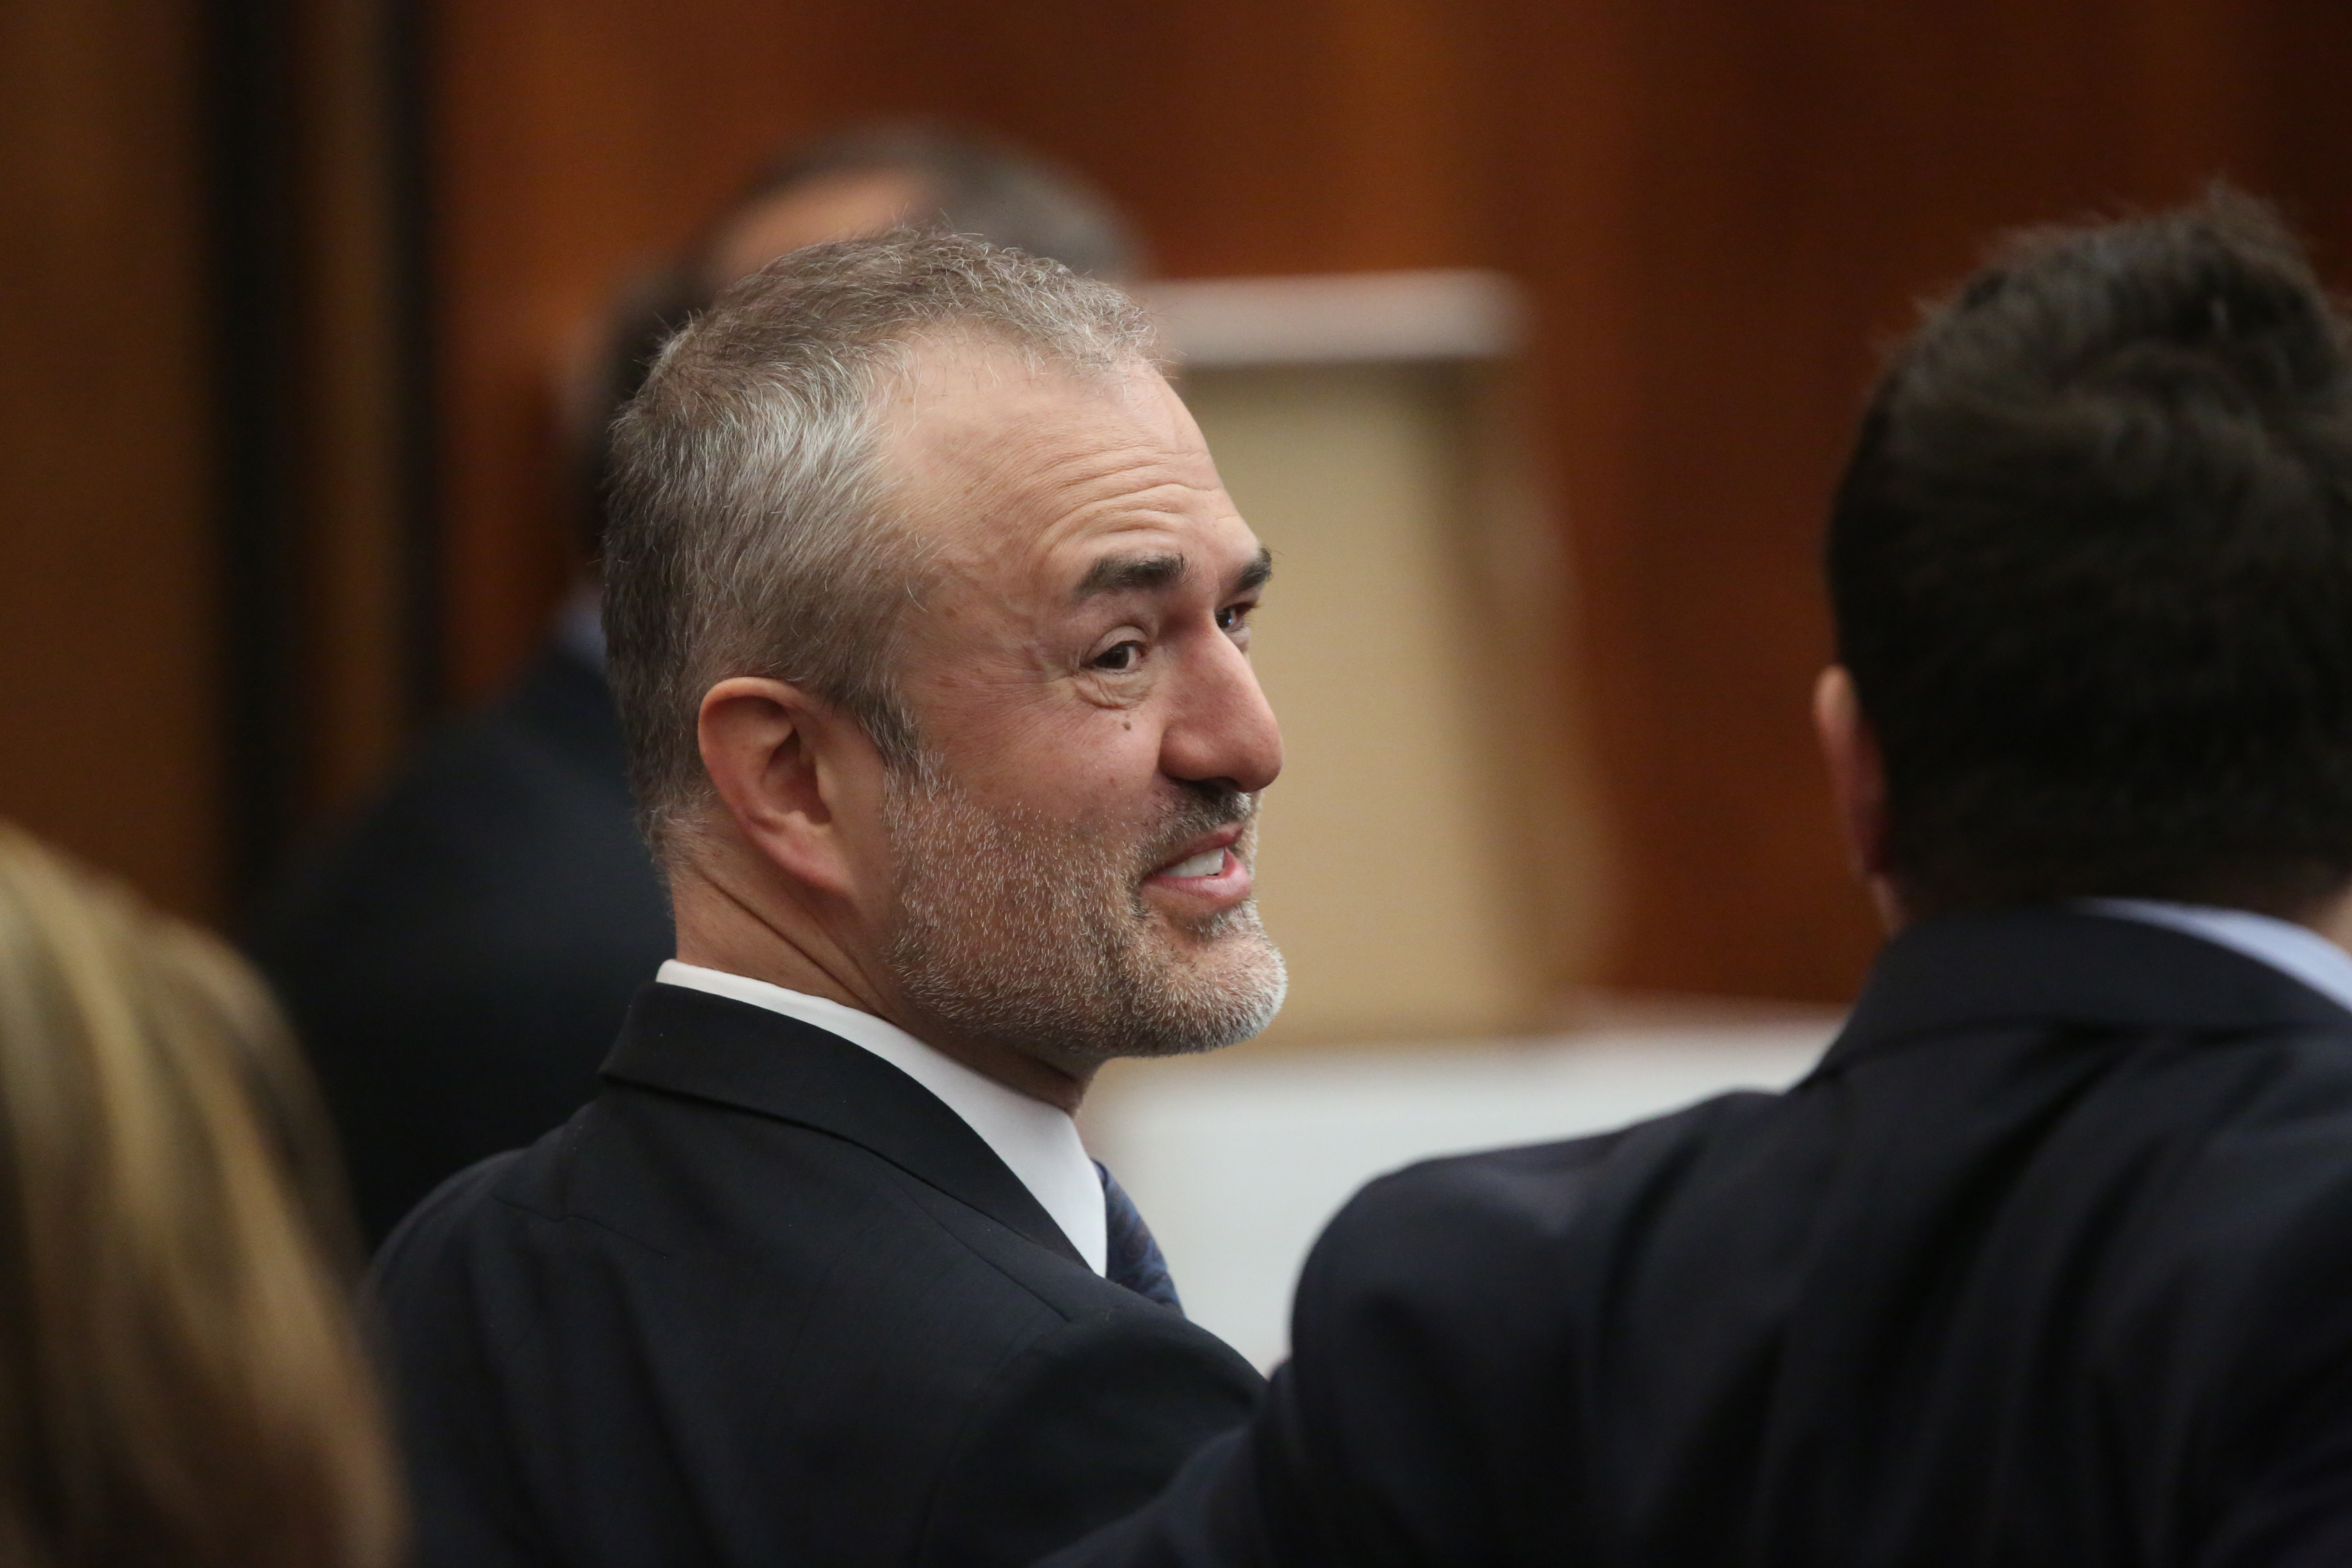 Nick Denton, founder of Gawker, talks with his legal team before Terry Bollea, aka Hulk Hogan, testifies in court during his trial against Gawker Media at the Pinellas County Courthouse on March 8, 2016